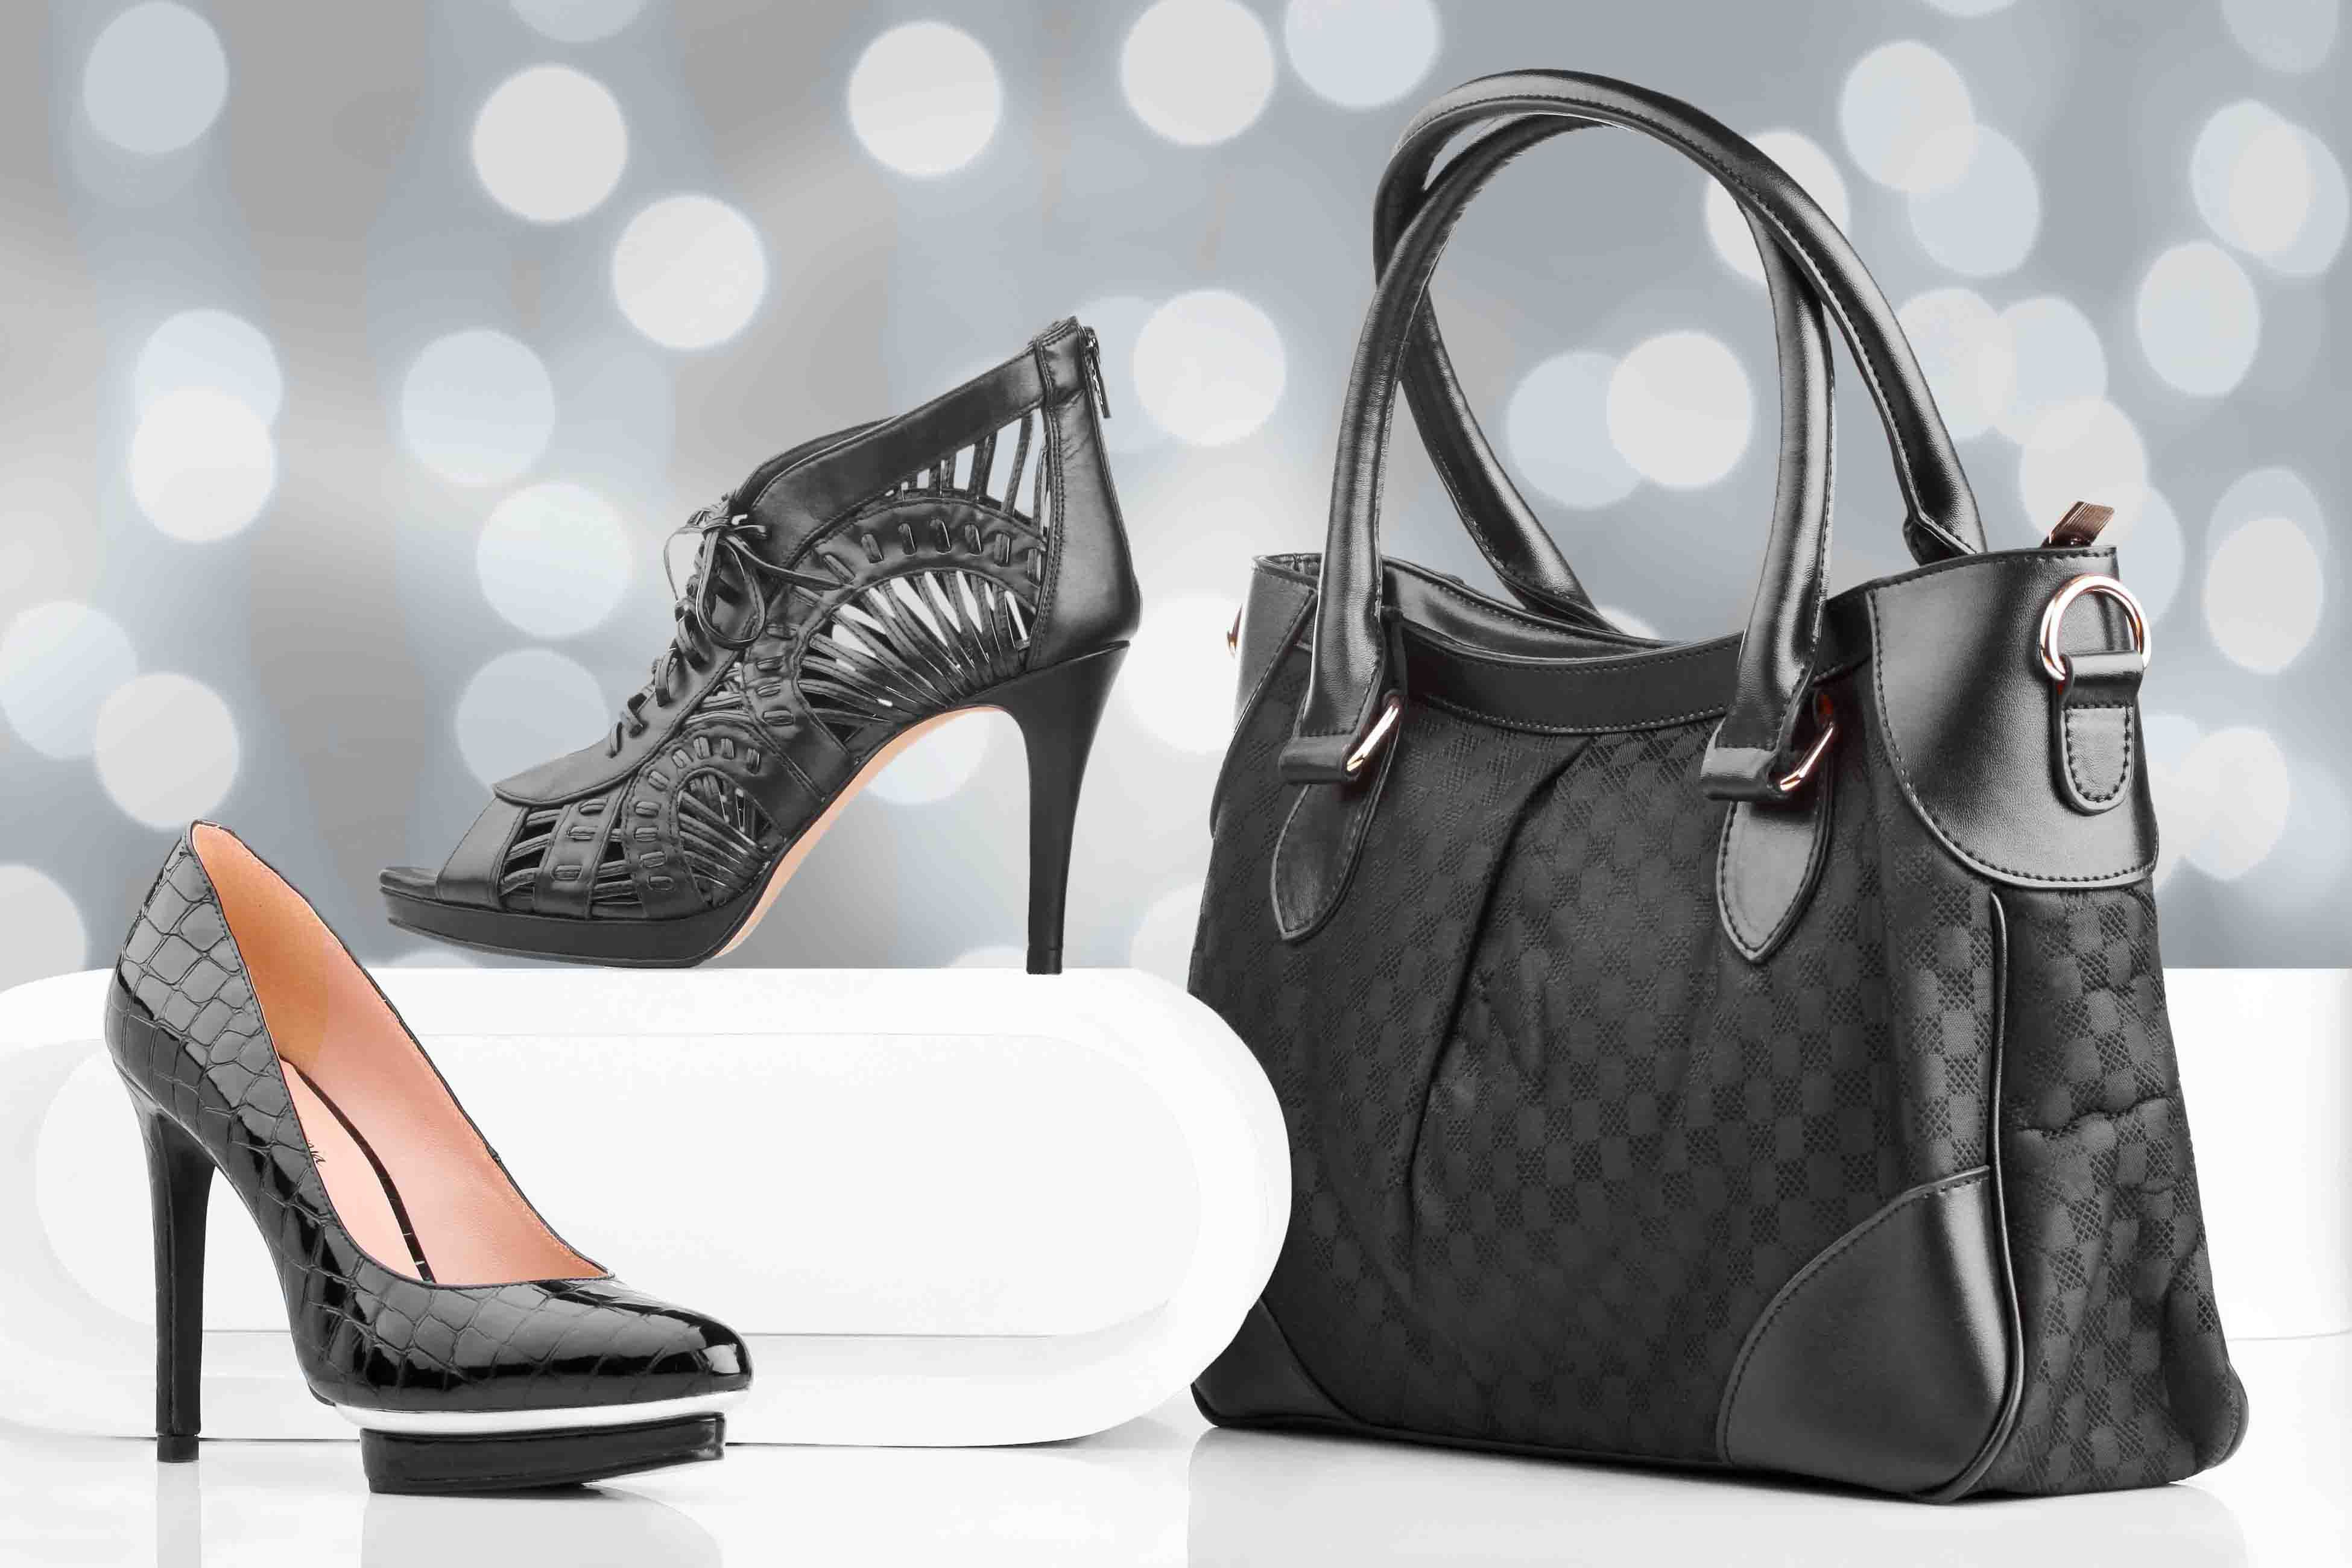 Insignia Party And Casual Brazilian Shoes Bags Collection 2017 Styloplanet 1 Card From User Kirill Sav360 In Yandex Collections